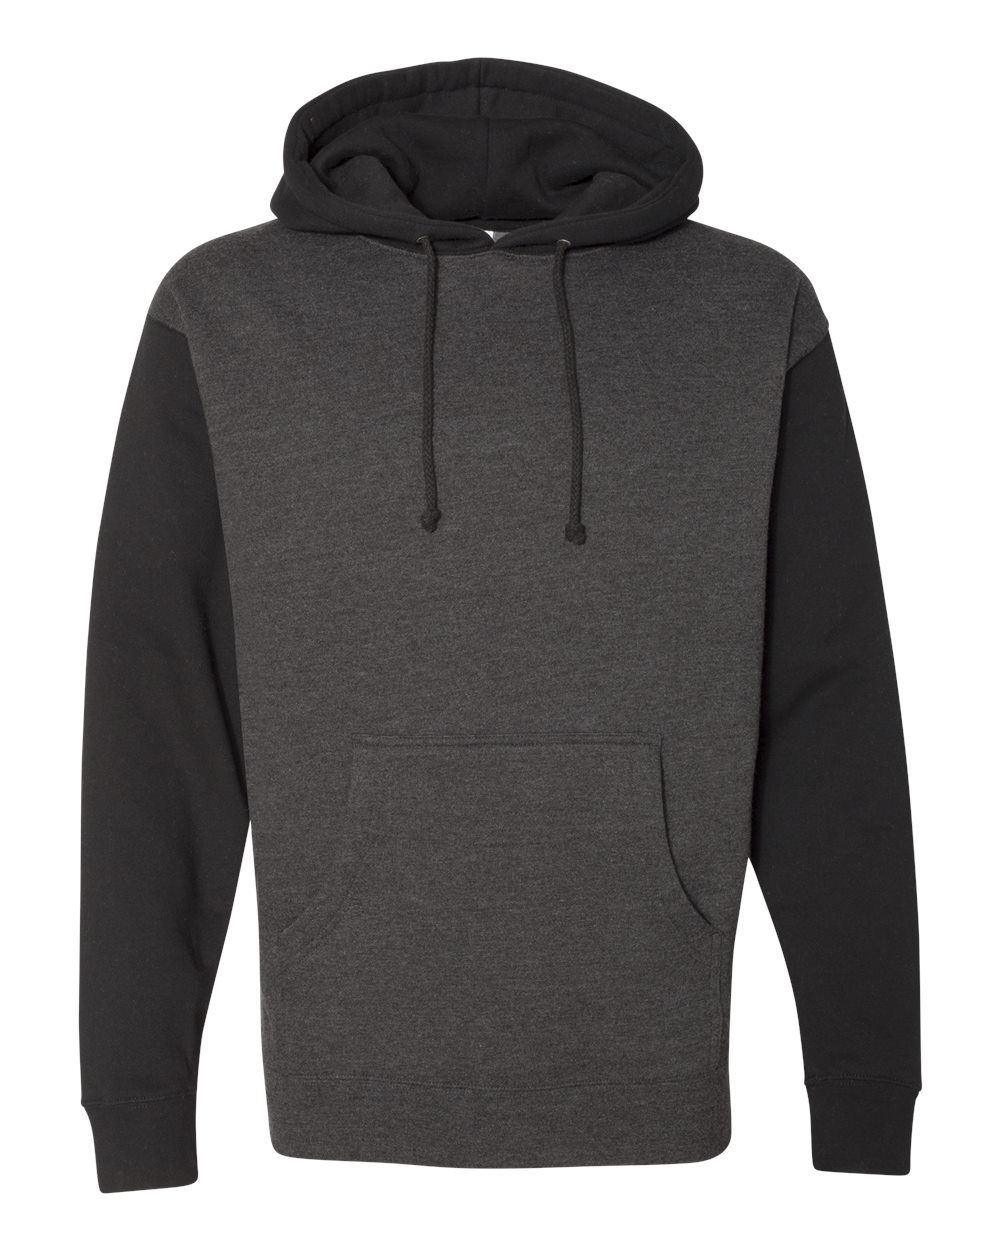 Independent-Trading-Co-Mens-Hooded-Pullover-Sweatshirt-IND4000-up-to-3XL miniature 30